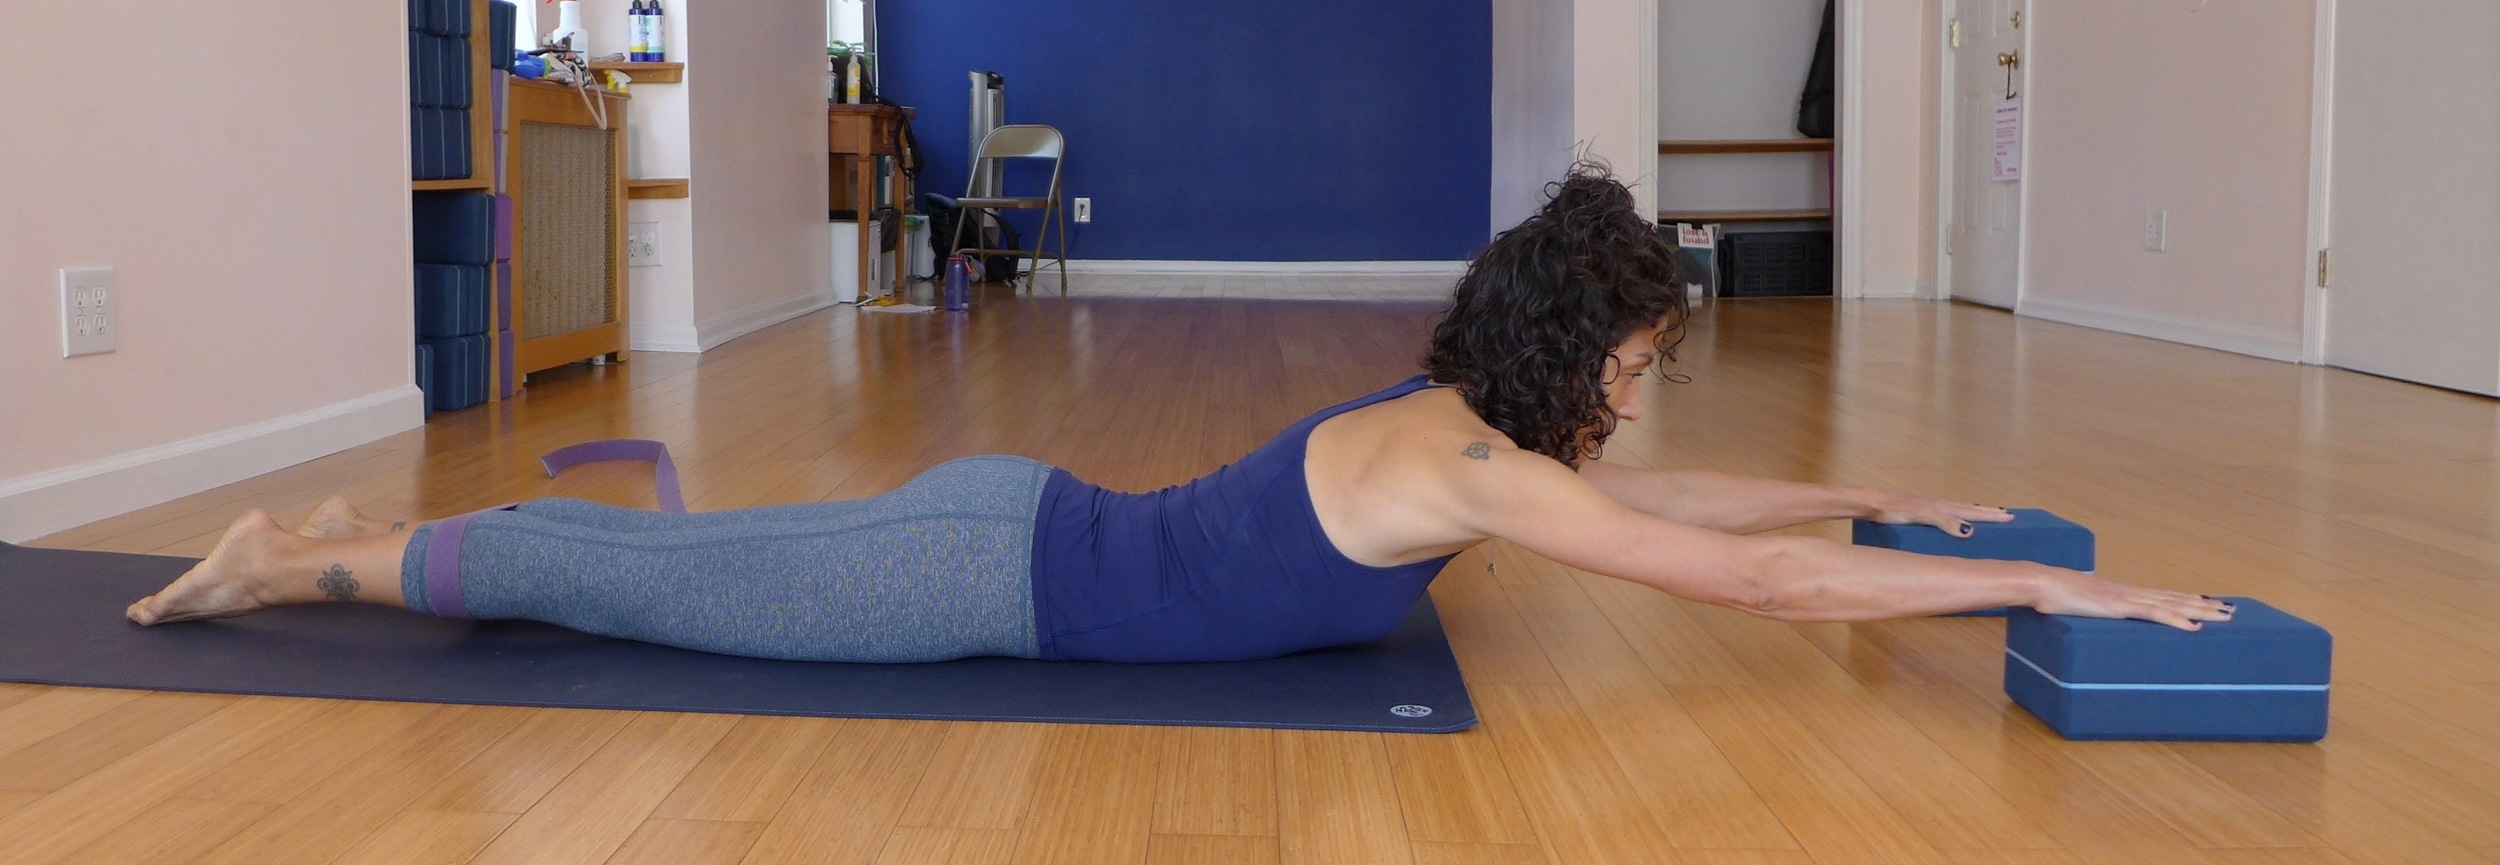 Cobra pose variation: This version of cobra helps to train full hip and spinal extension, as well posterior tilt of the pelvis.. Strap your shins like you did in mountain pose at the beginning of the practice, then press out into the strap. This will help engage the lower glutes and outer hips to secure the pelvis into a posterior tilt. Firmly press your hands down into the blocks. Keep your feet on the ground and lengthen your chest towards the blocks, like you did in cow pose.  Hold for five breaths, release, then repeat two more times.